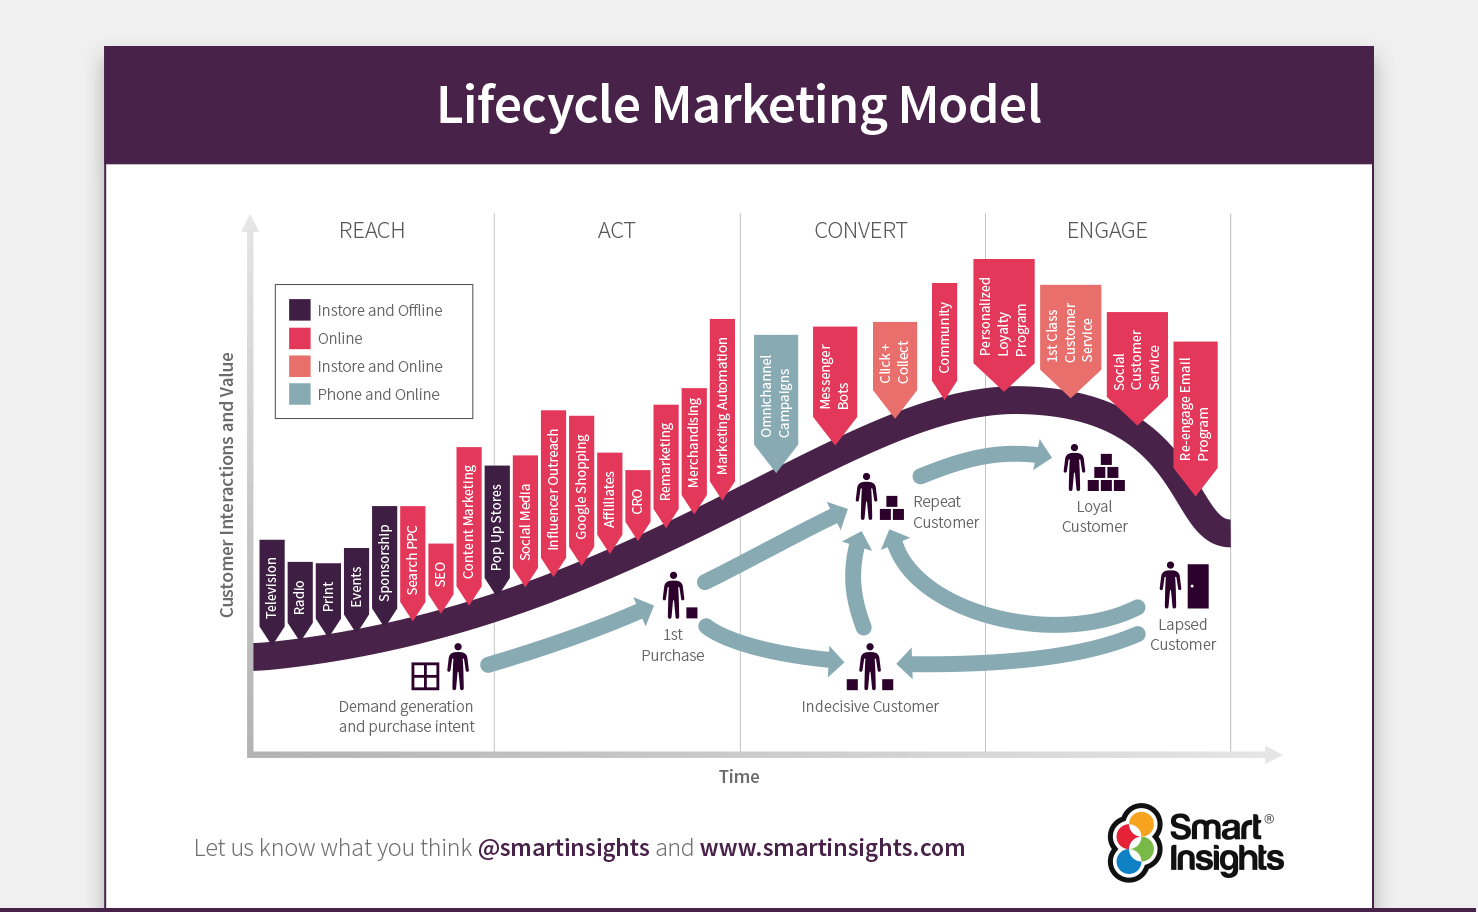 RACE lifecycle marketing model diagram